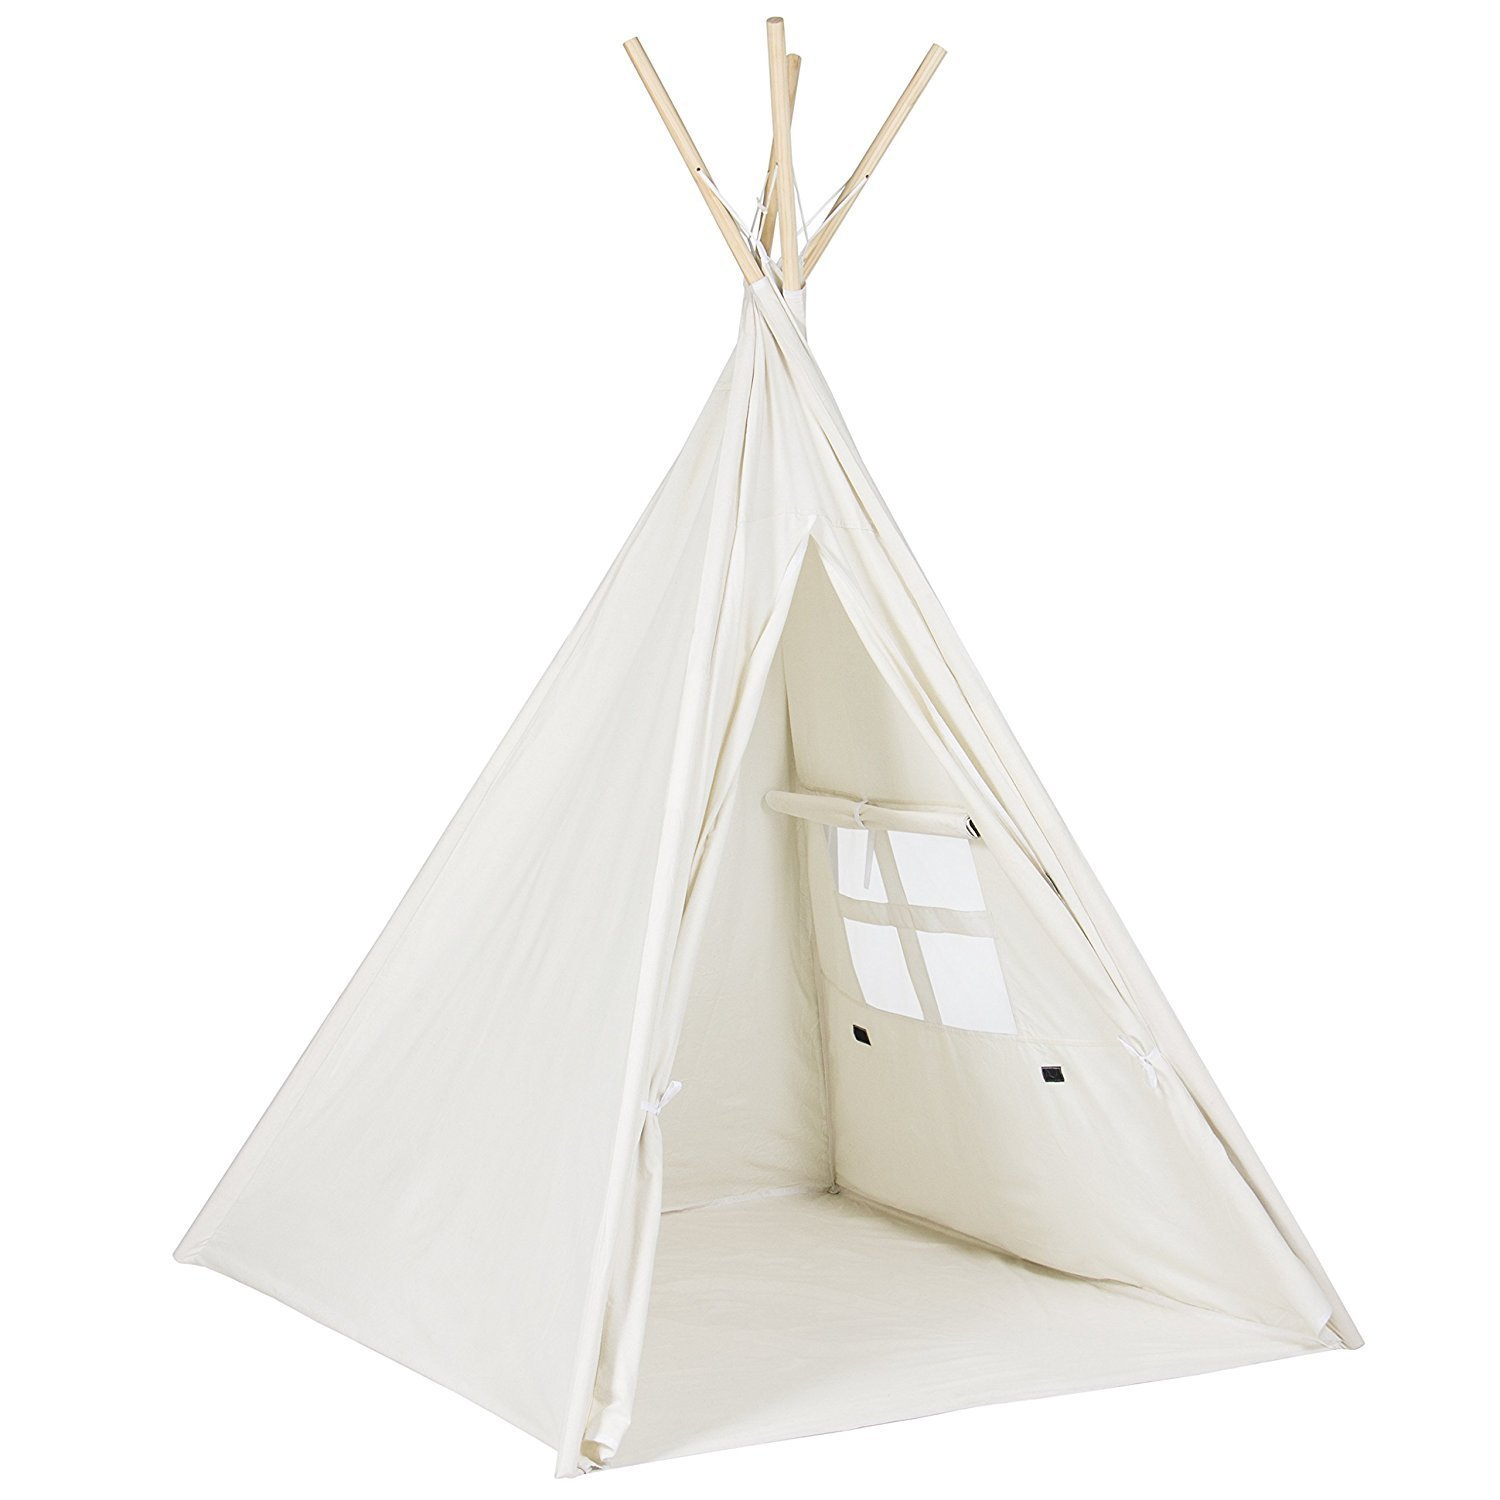 Decorsw Indoor Playroom & Bedroom Indian Playhouse Toy Teepee Play Tent for Kids Toddlers Canvas (Offwhite)